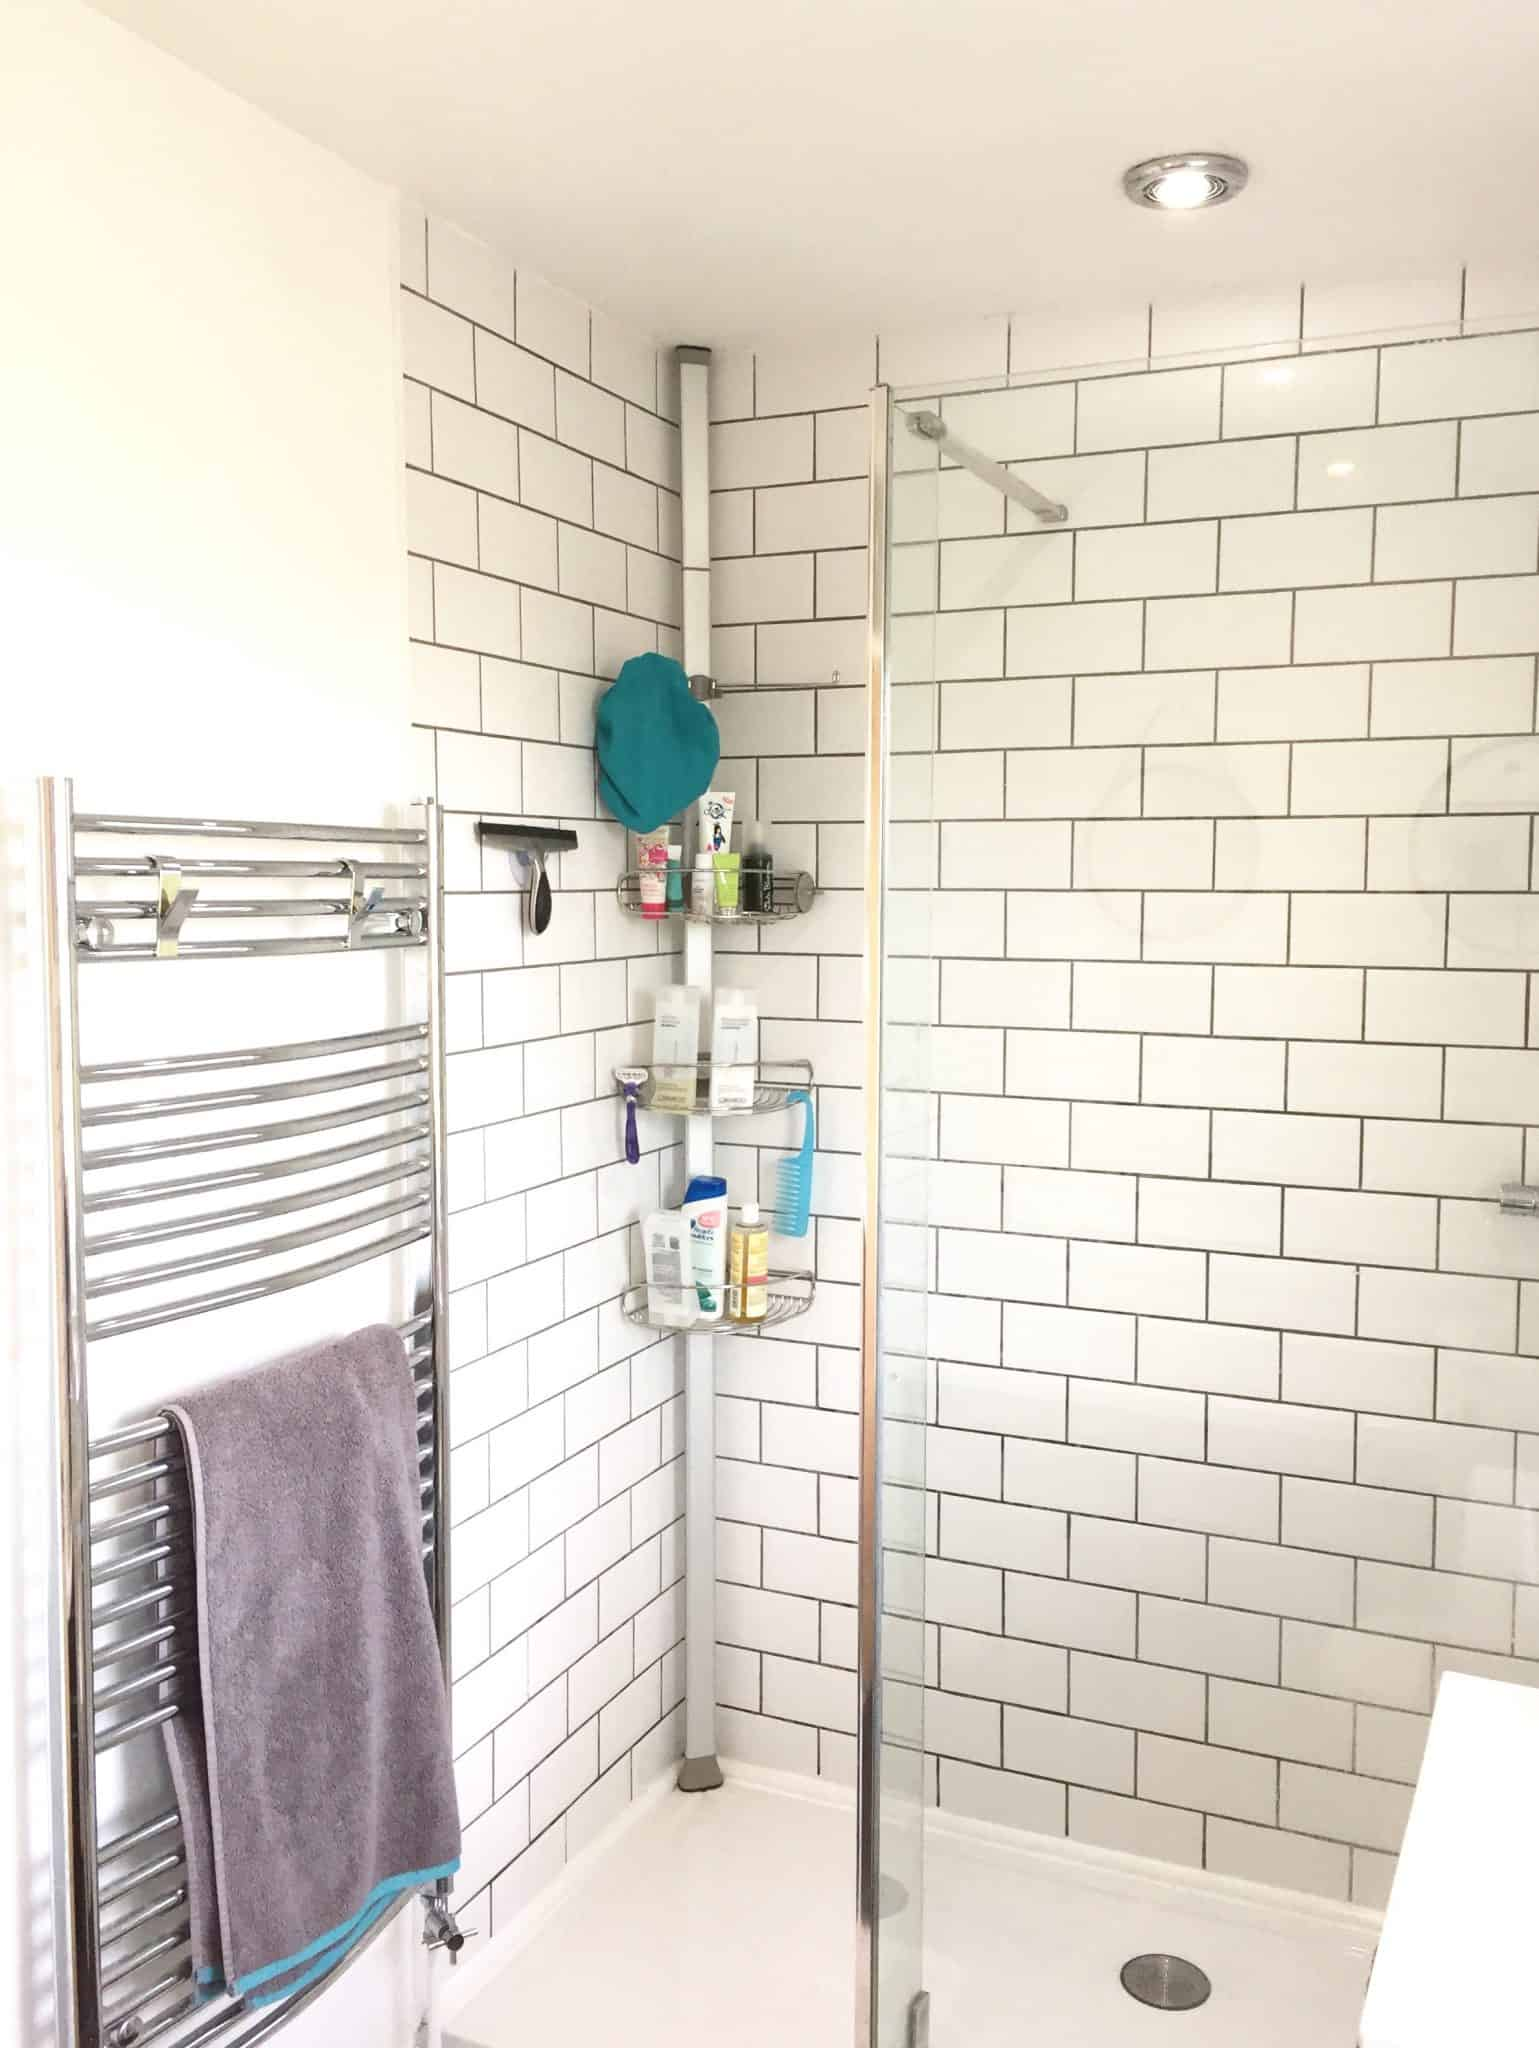 Walk in shower with white metrol tiles and grey grout and SimpleHuman shower caddy